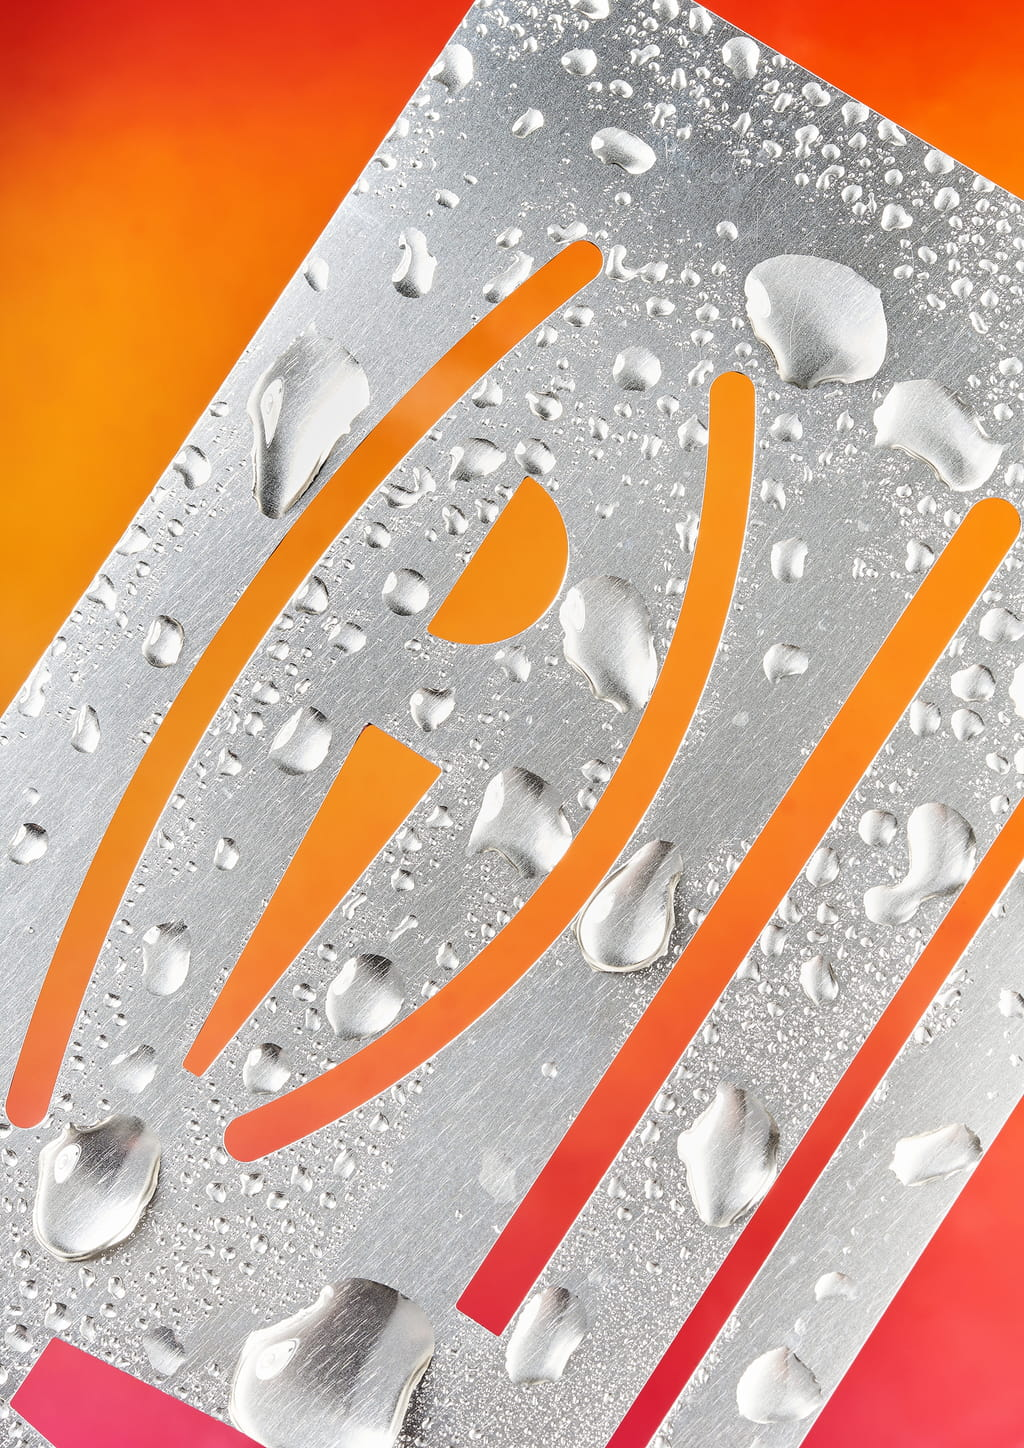 Photograph of a metallic stencil covered with drops of water on a pink and orange gradient background.